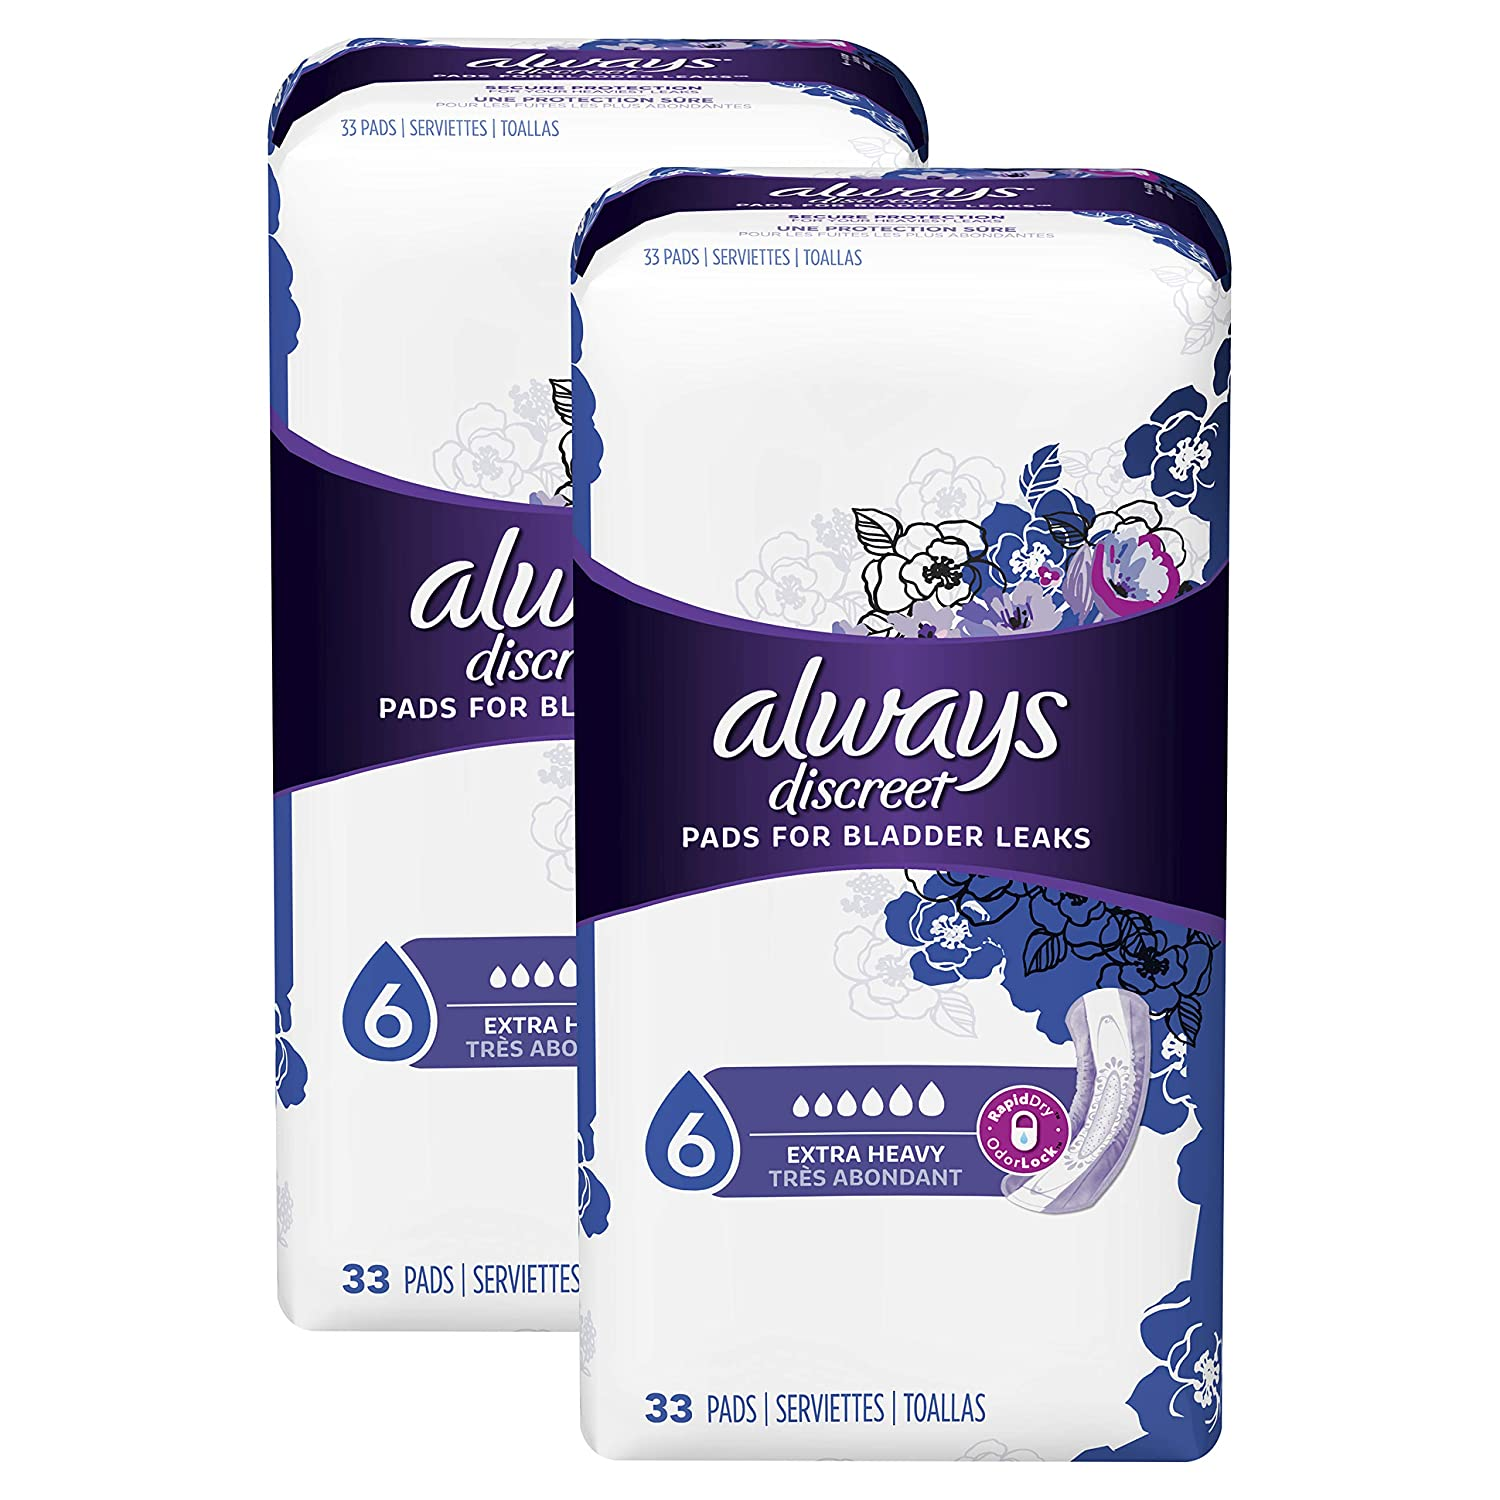 Amazon.com: Always Discreet Incontinence & for Women, Extra Heavy Absorbency, 33 Count - Pack of 2 (66 Count Total): Health & Personal Care